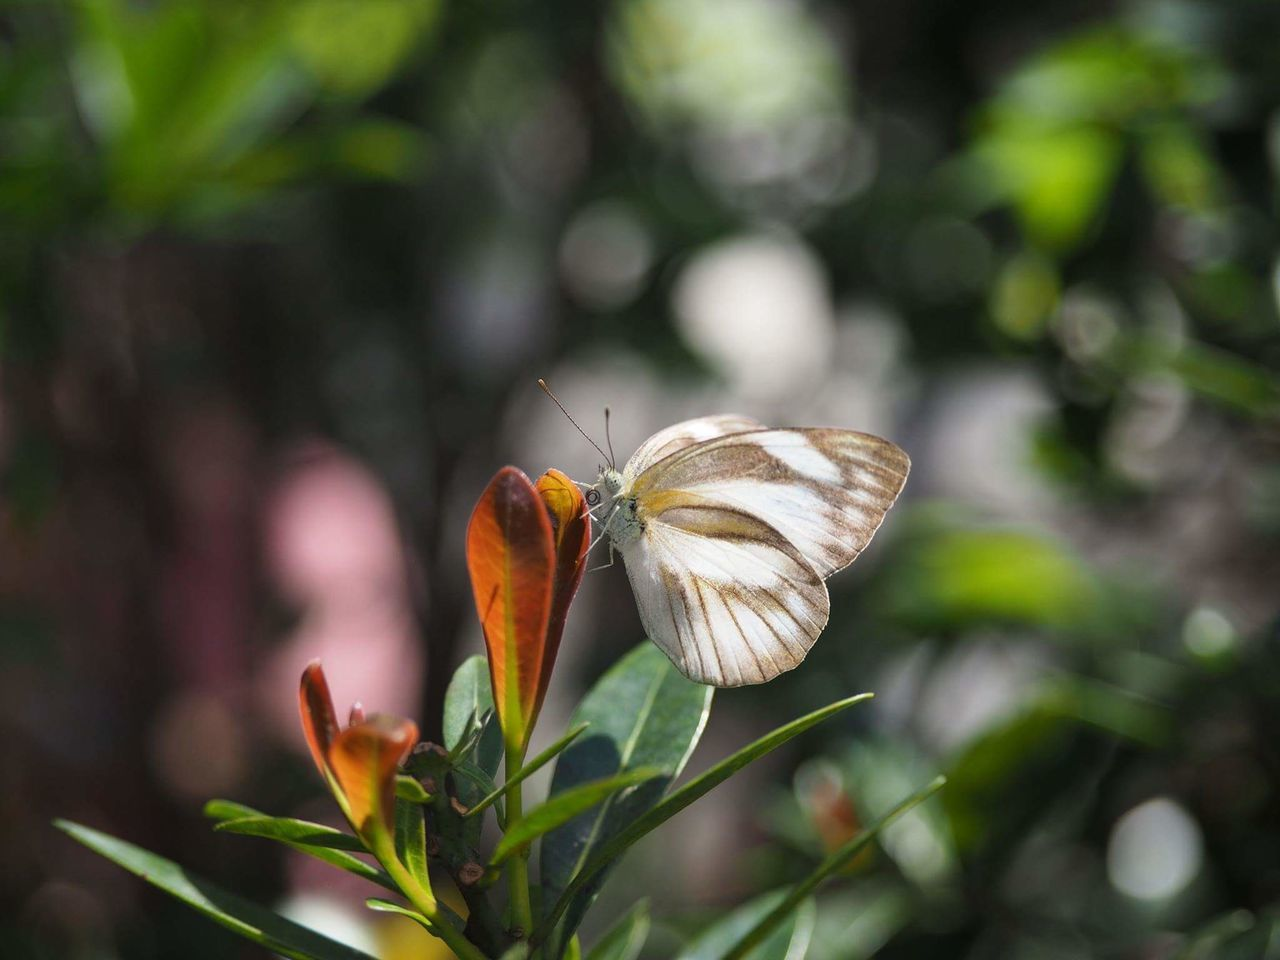 insect, animals in the wild, one animal, animal themes, nature, butterfly - insect, focus on foreground, plant, no people, close-up, animal wildlife, fragility, outdoors, day, flower, growth, freshness, pollination, beauty in nature, perching, flower head